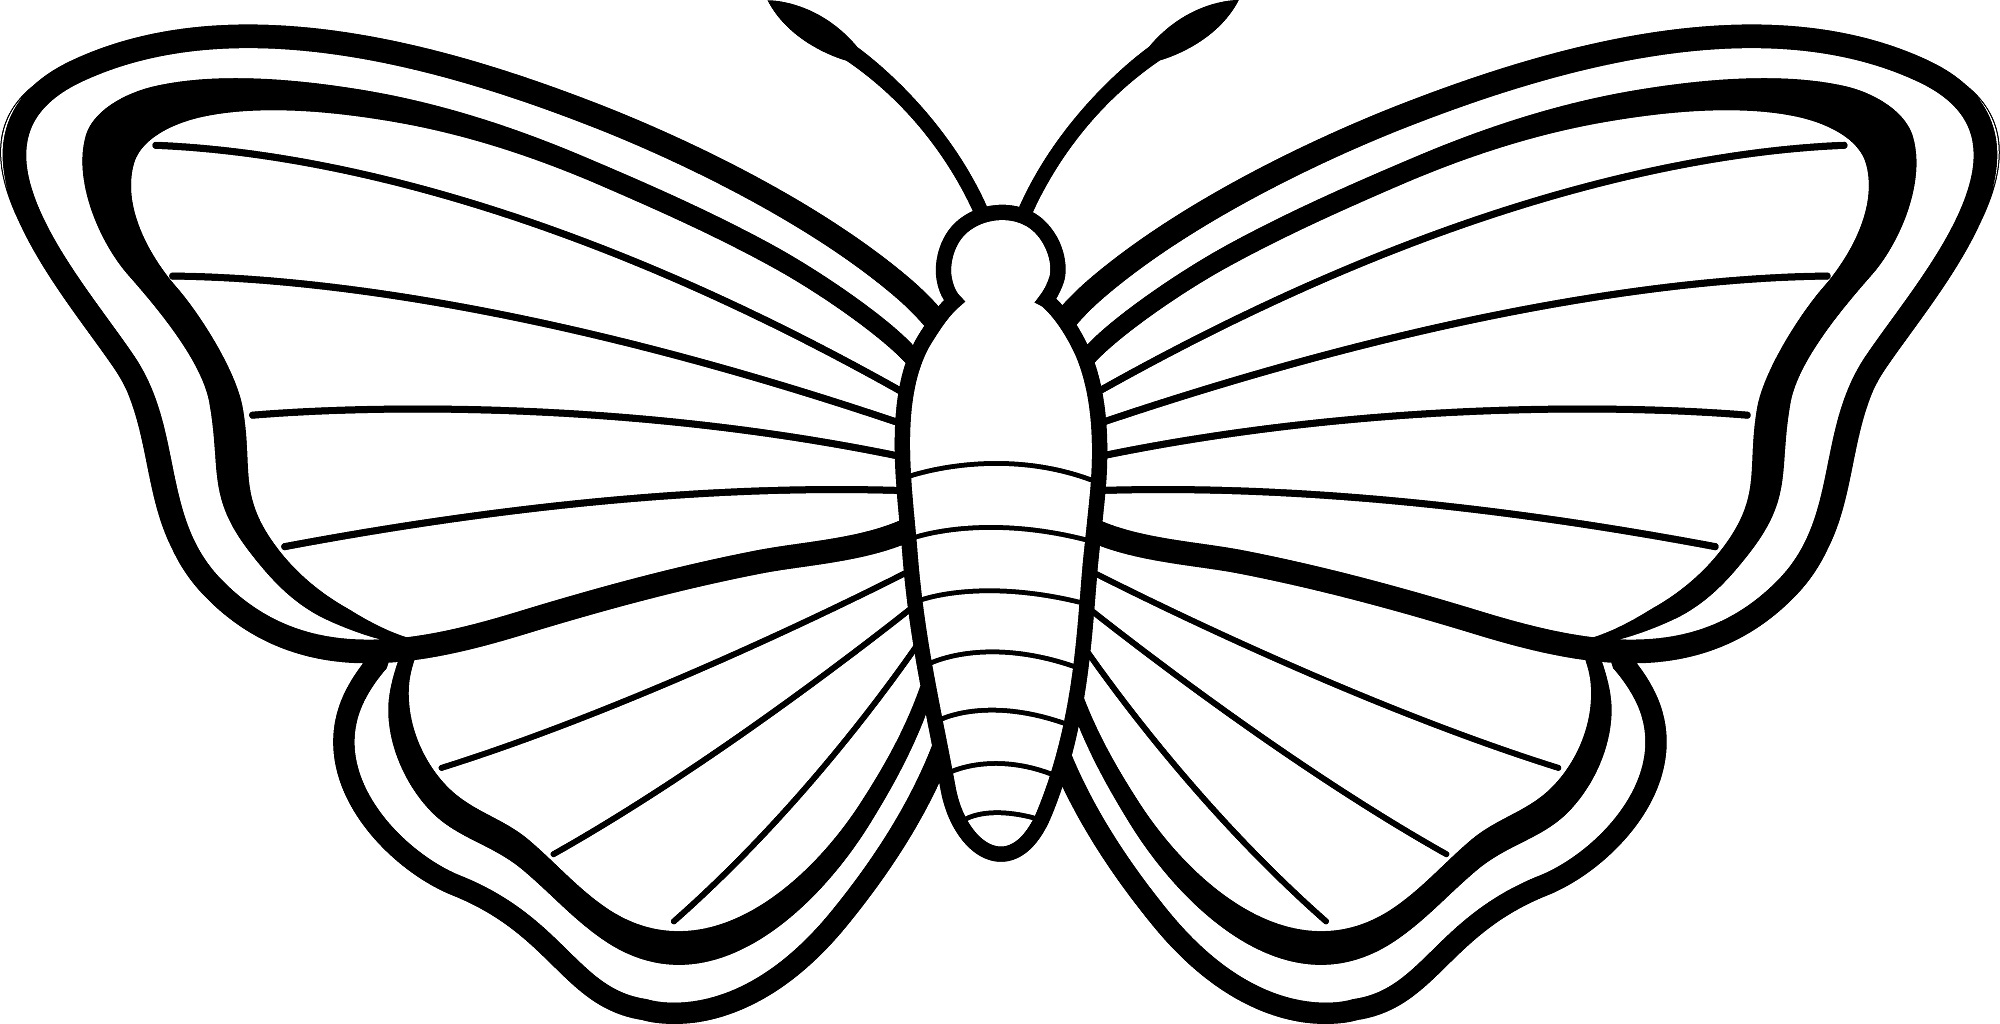 butterfly clipart to color free printable butterfly coloring pages for kids butterfly color clipart to